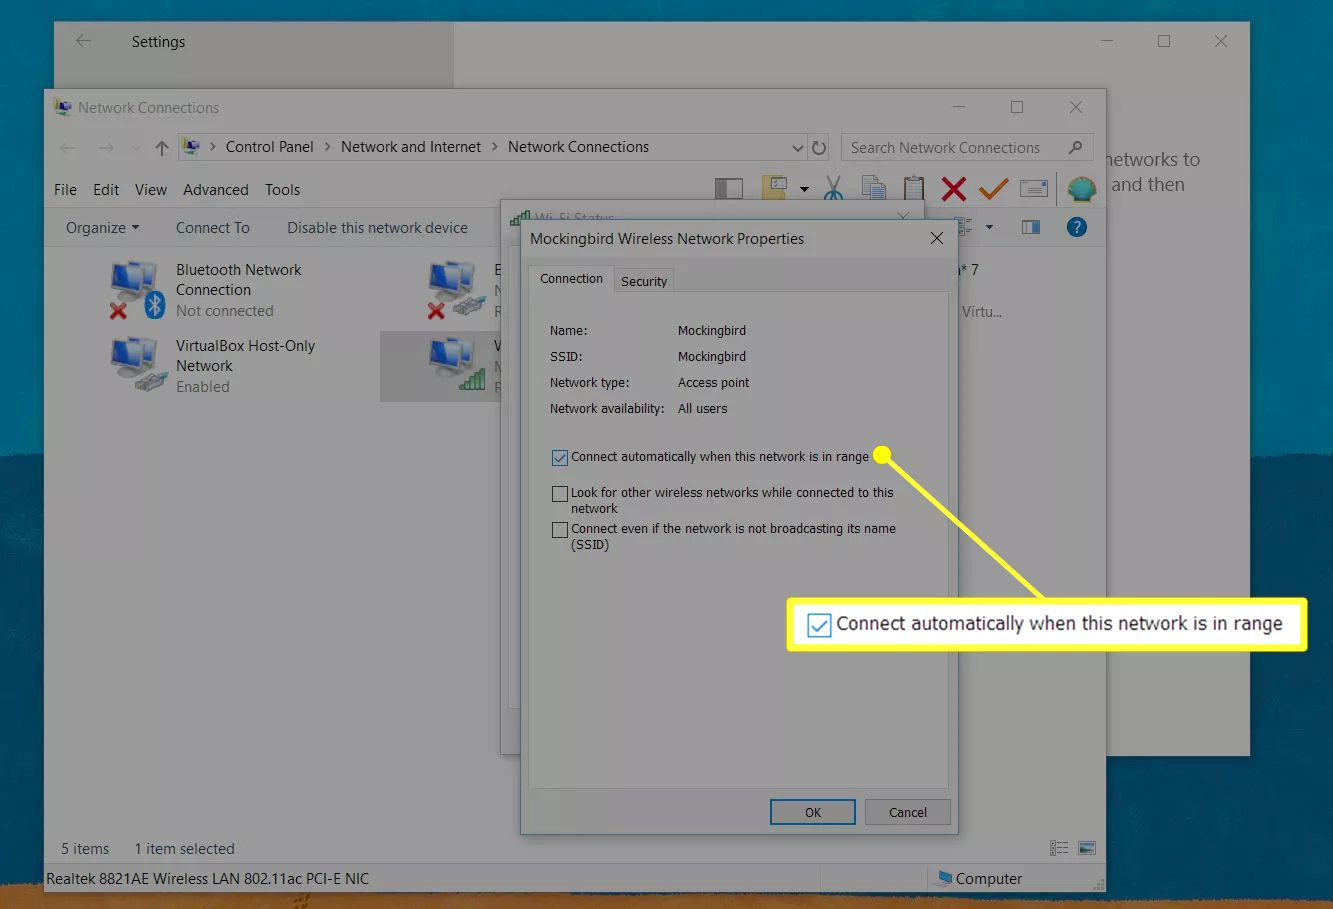 'Connect automatically when this network is in range' selection in Wireless Network Properties window